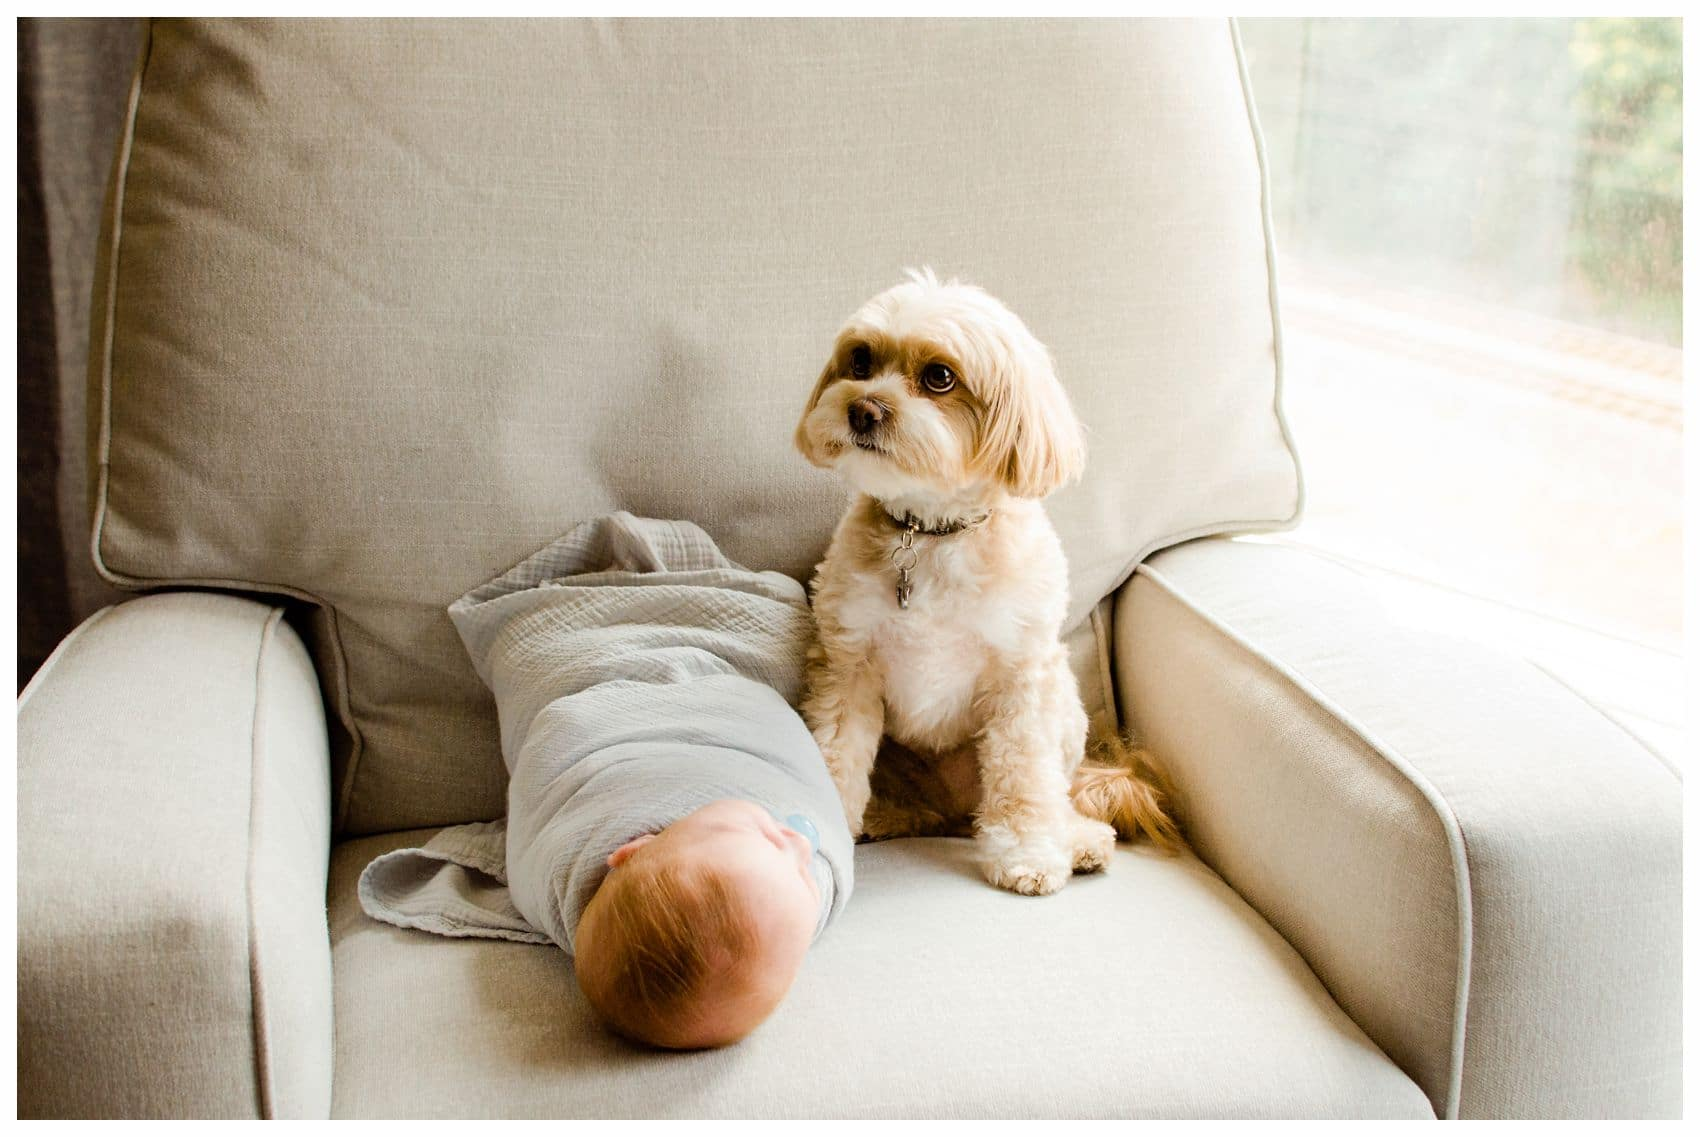 Best newborn photographer Miriam Dubinsky shares a newborn baby boy with his family dog on a chair